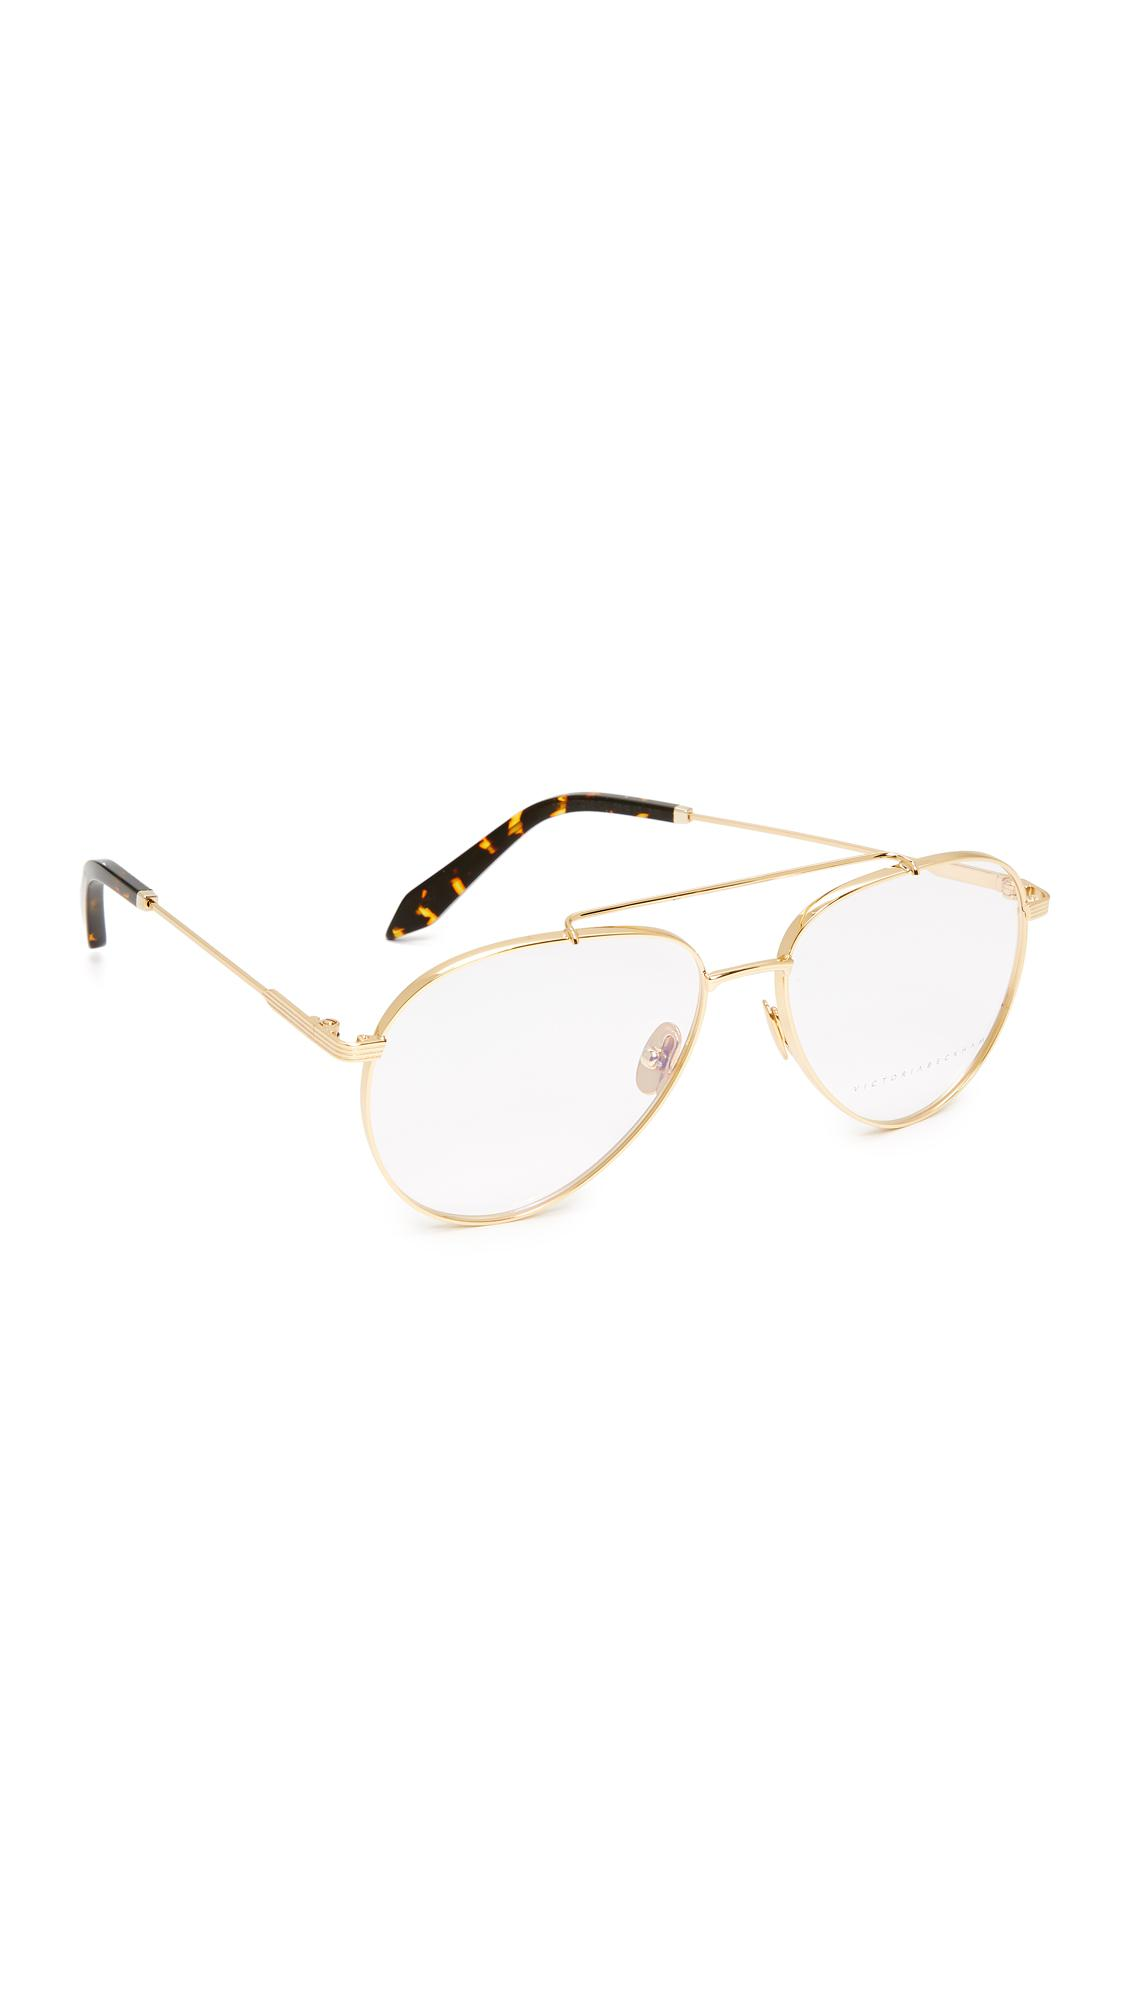 15088bf36f8 Lyst - Victoria Beckham Grooved Aviator Glasses in Metallic